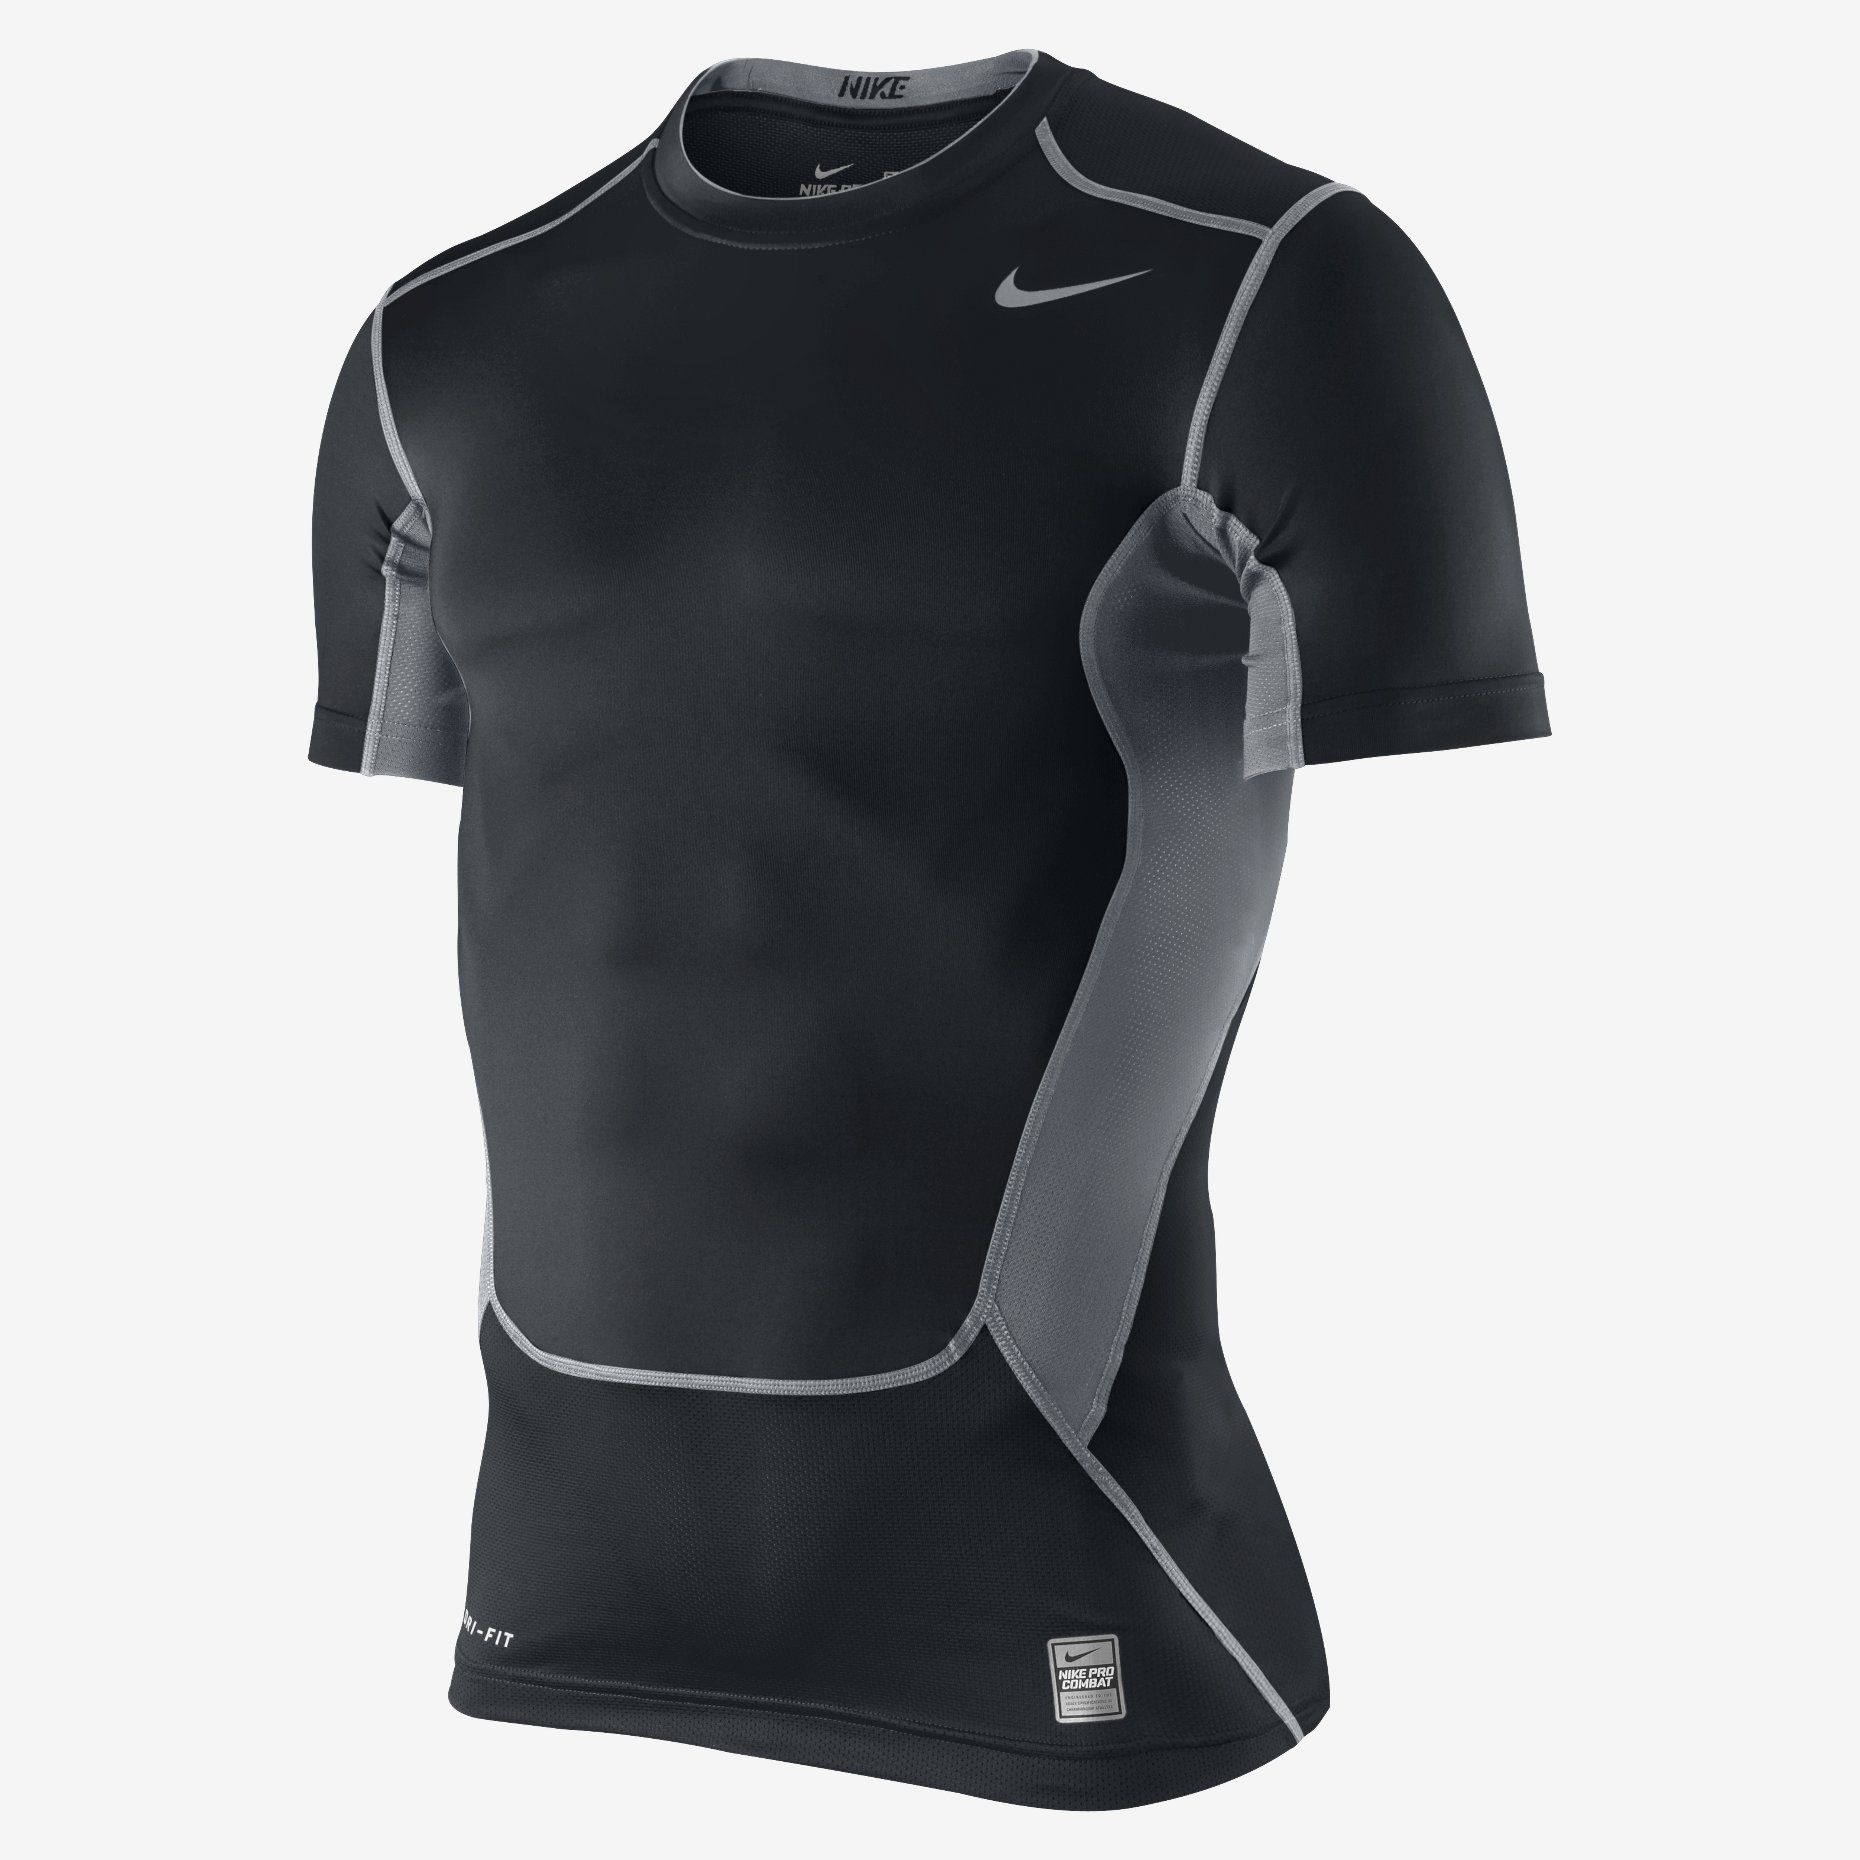 timeless design c0bc4 65067 Nike Store Nike Pro Combat Hypercool 2.0 - I ve liked compression shirts,  but I ve never been into them. I think it s time!